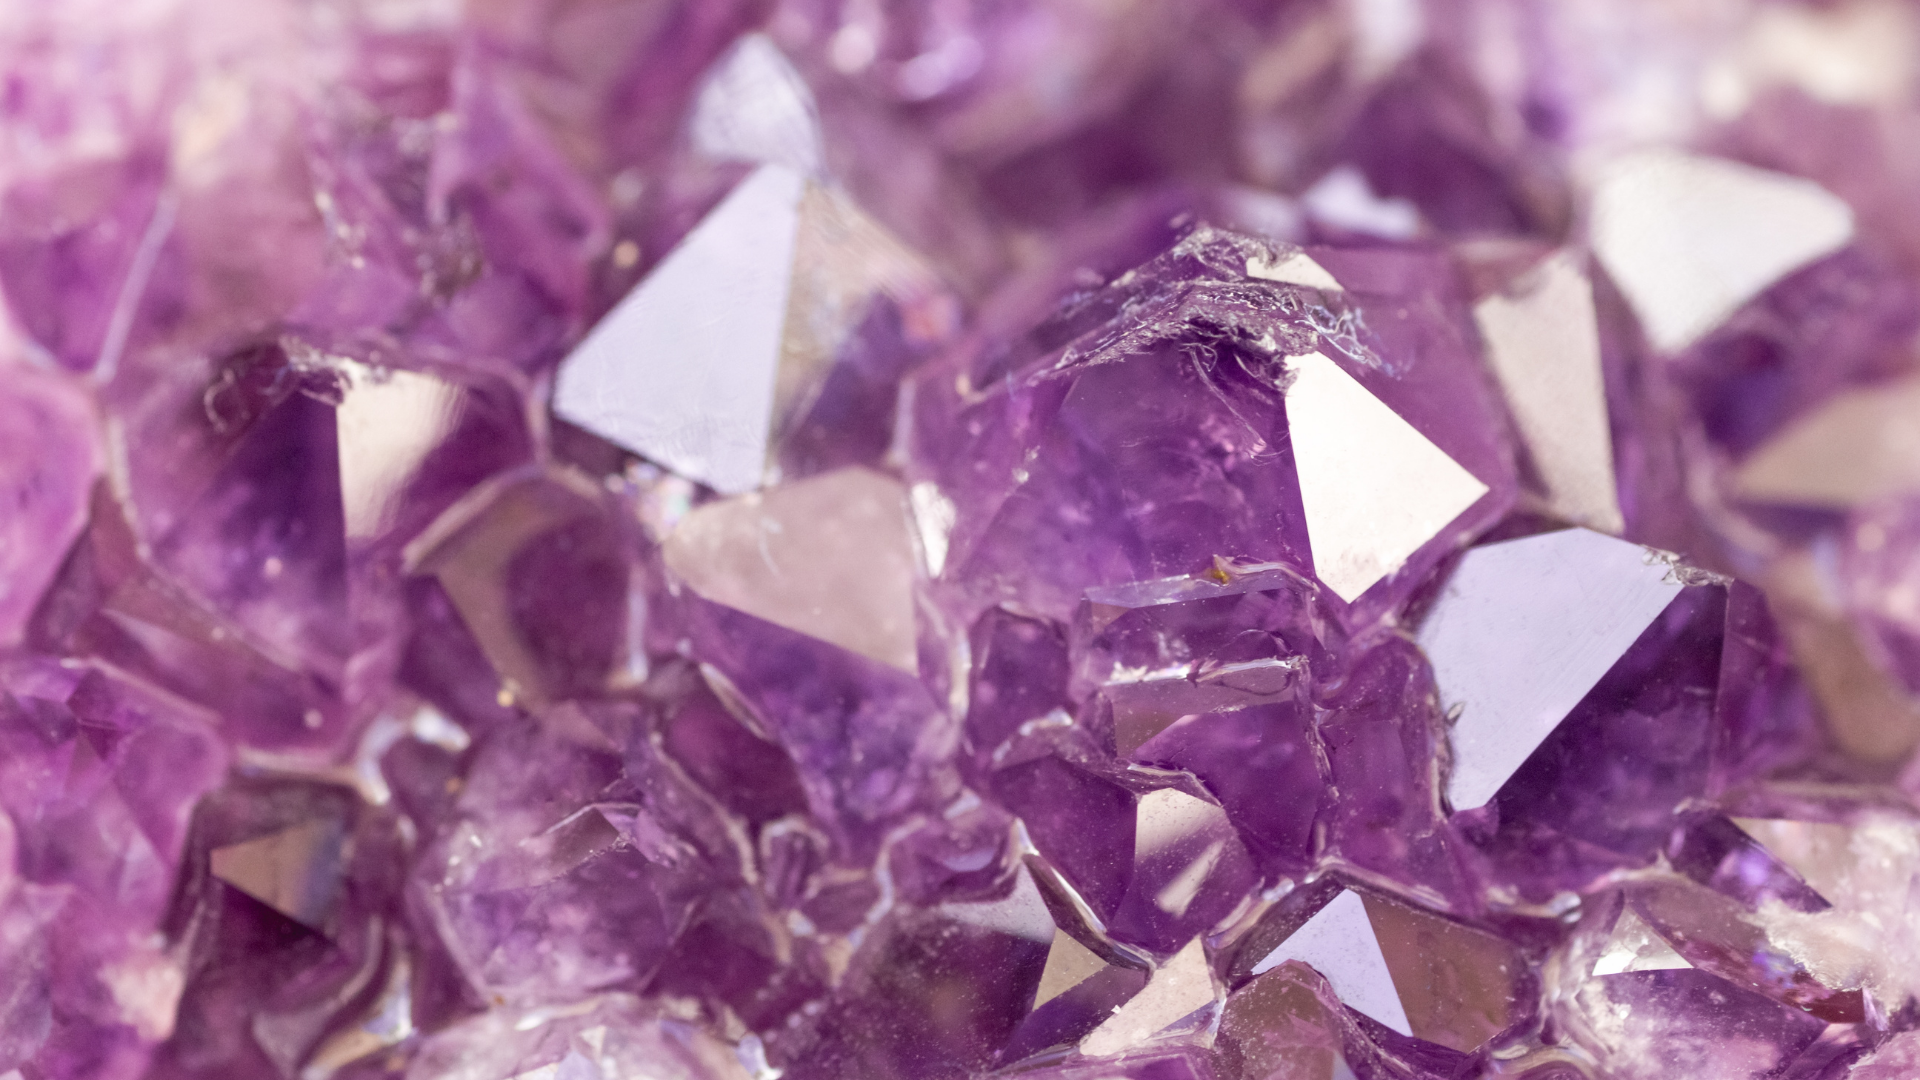 List of ethical healing crystals shops for people who want to find sustainable and ethical crystals.   For Animals. For Earth.